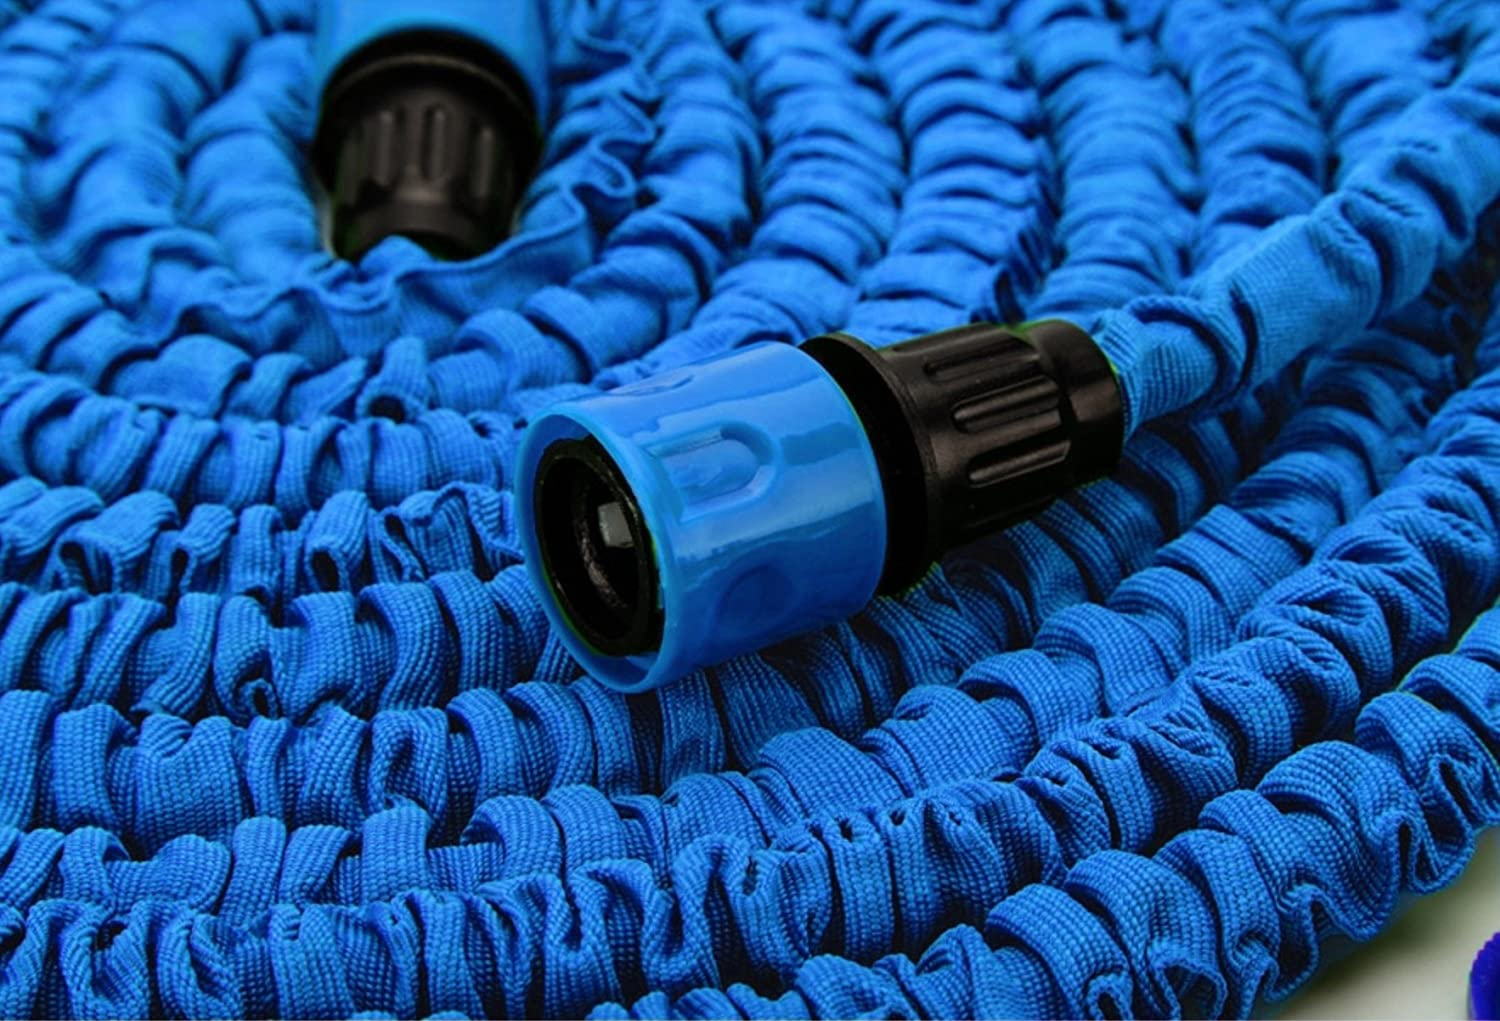 Expandable And Flexible Garden Hose 25 50 75 Foot Selang Magic House 225 M Expanding Or Collapsible For Easy Home Storage Blue Outdoor